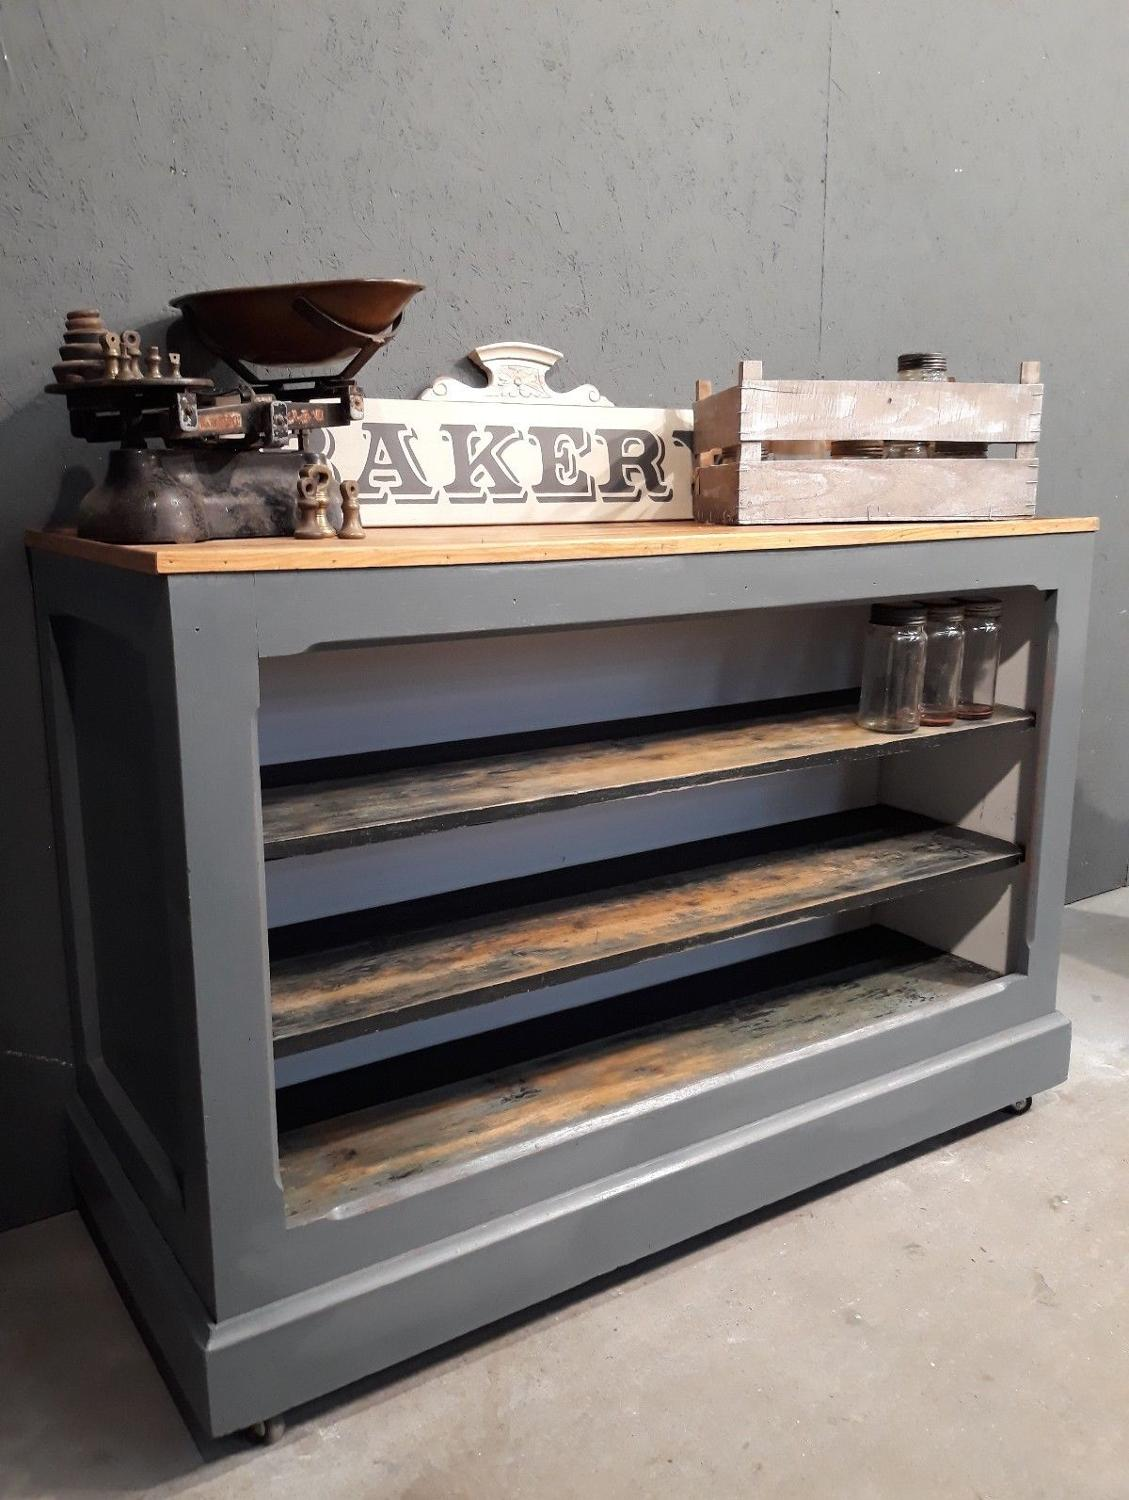 Reclaimed boulangerie counter